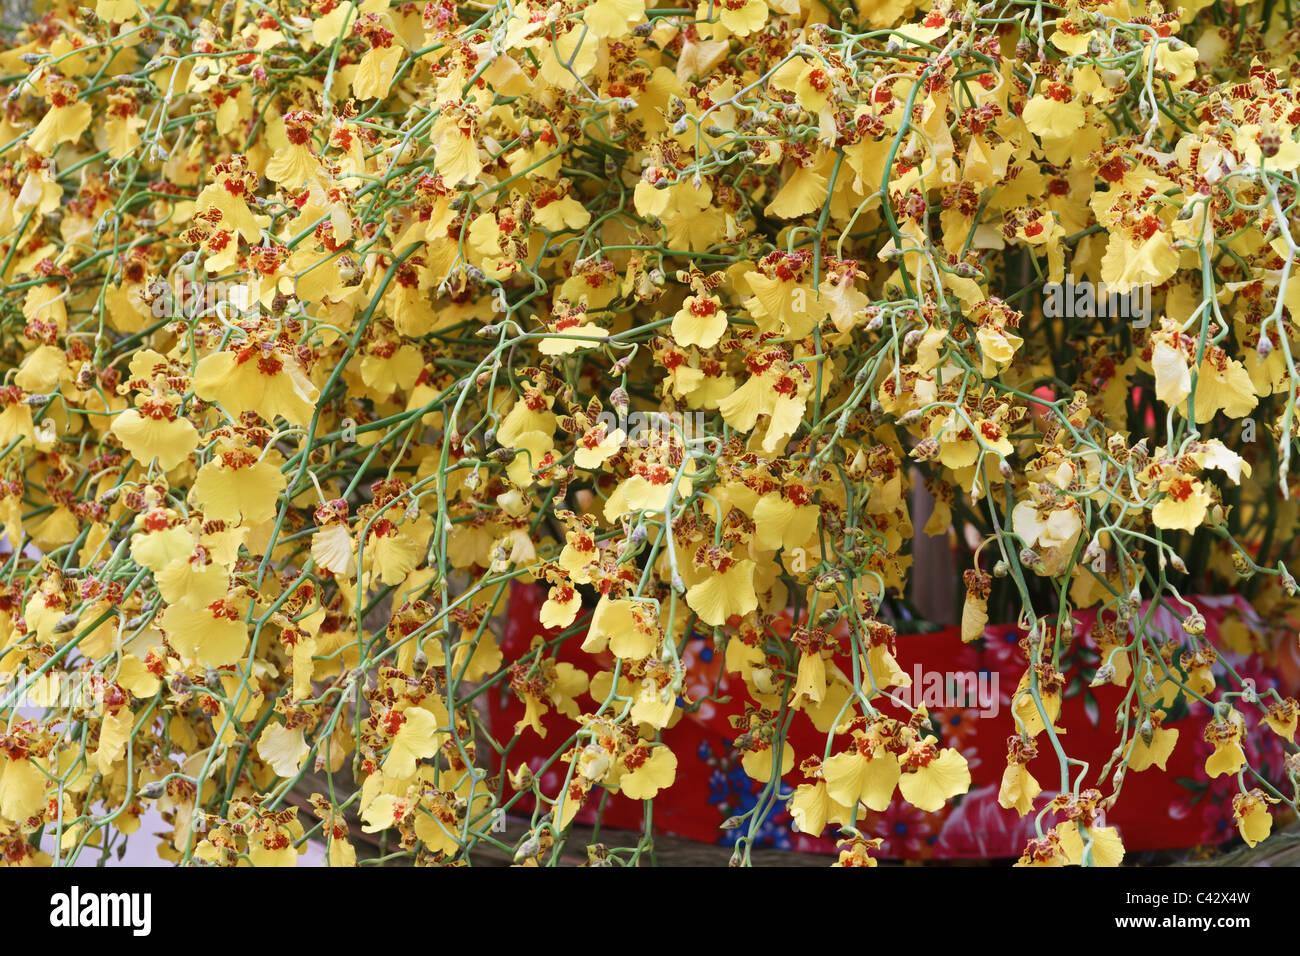 Flowers exotic detail rare stock photos flowers exotic detail rare beautiful yellow oncidium flowers hang from orchid plant stock image izmirmasajfo